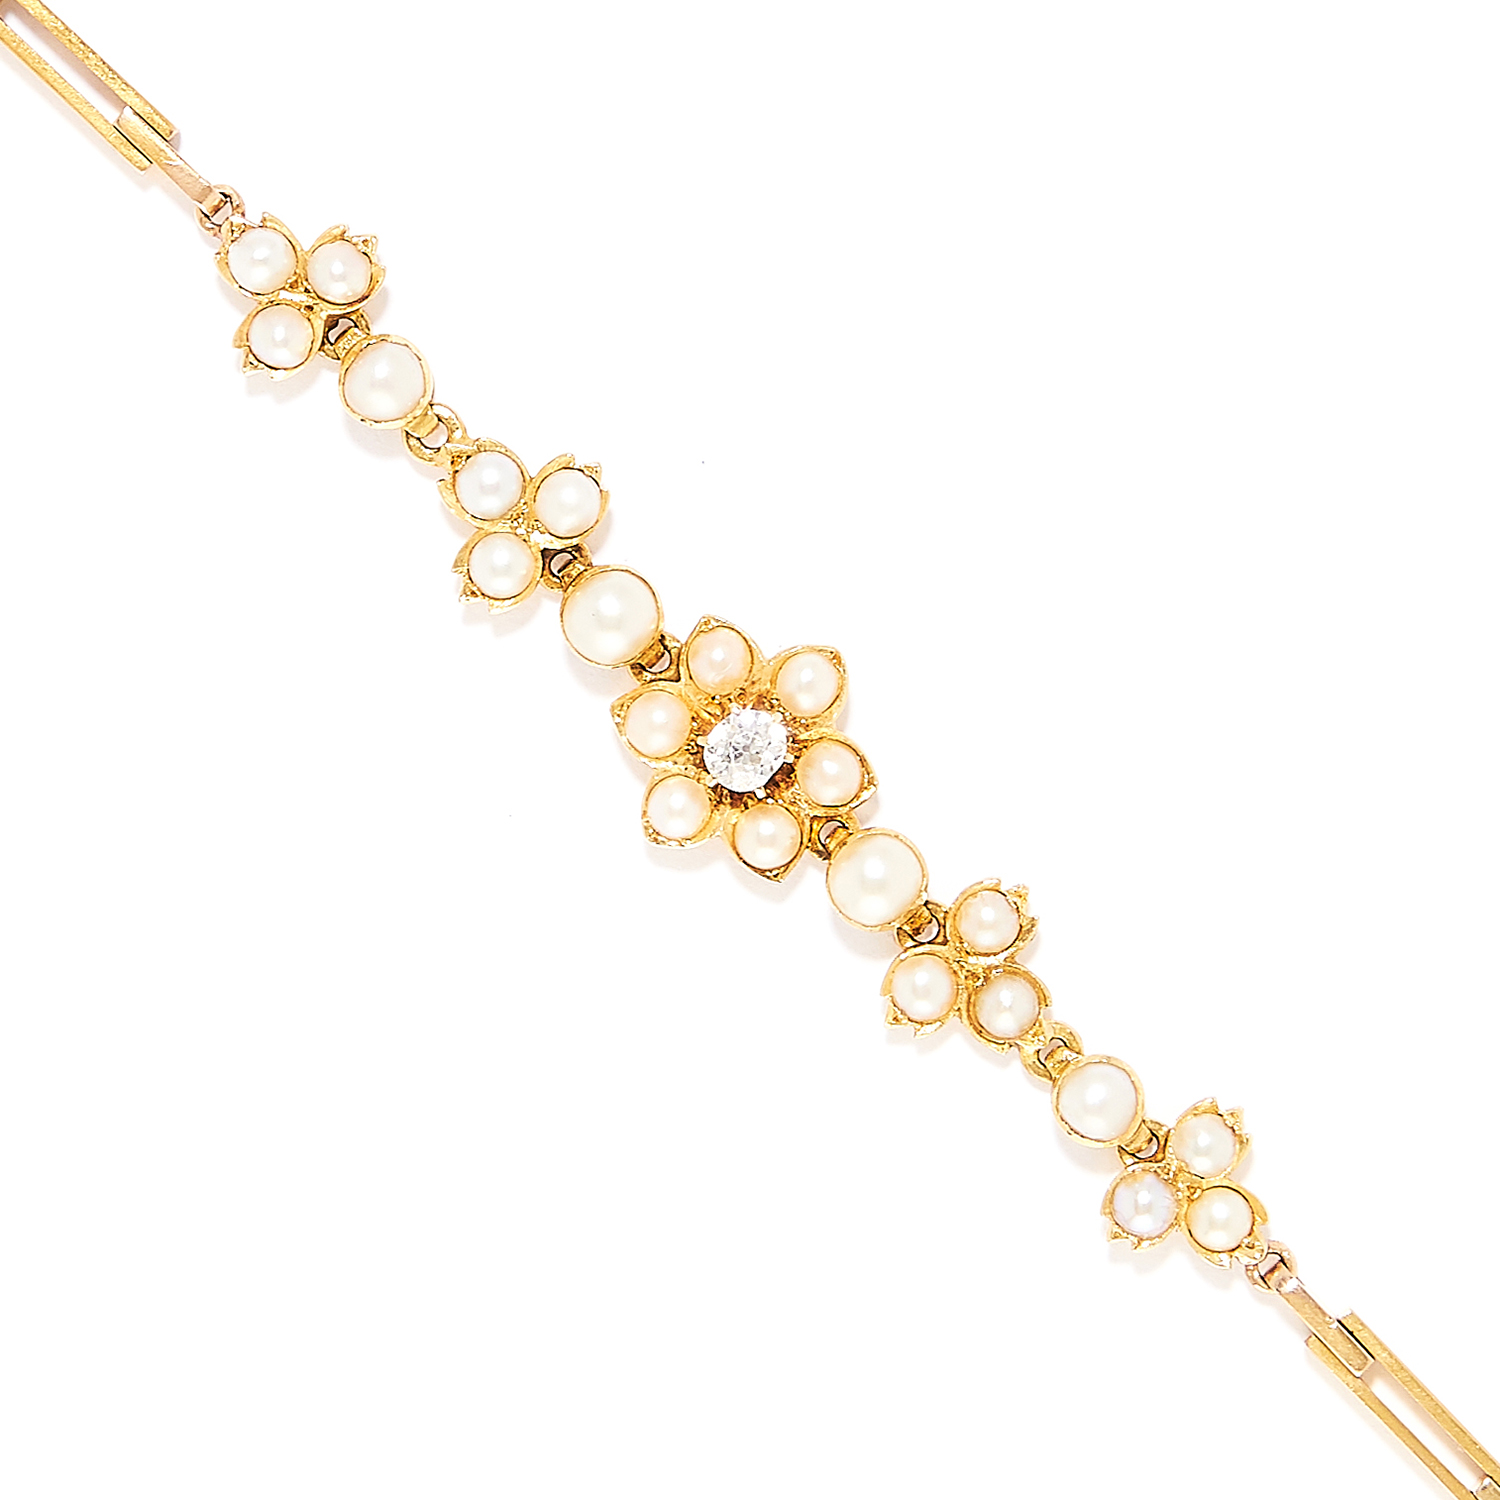 ANTIQUE SEED PEARL AND DIAMOND BRACELET in high carat yellow gold, in foliate motif set with seed - Bild 2 aus 2